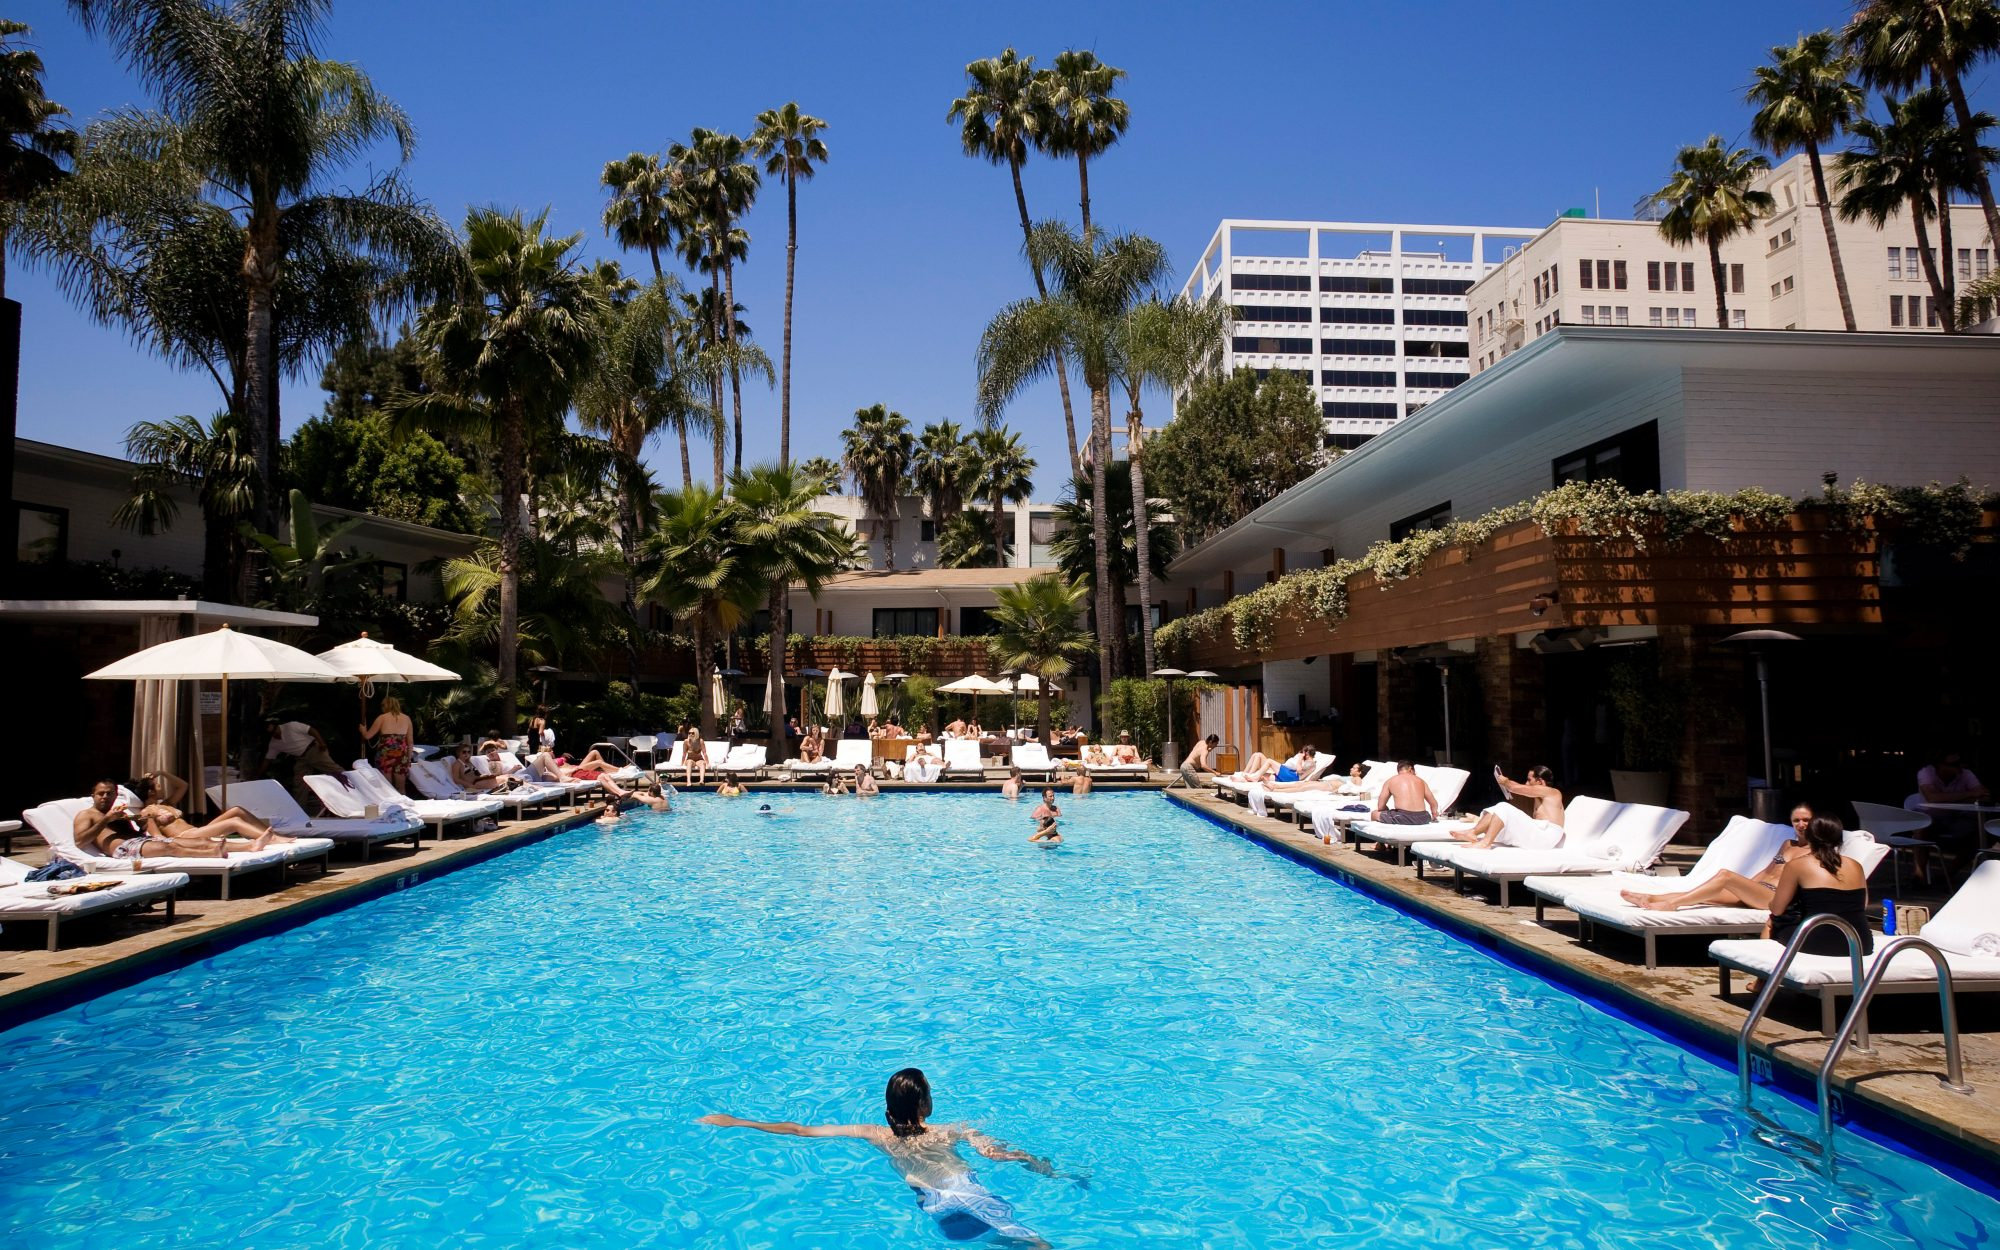 Best Hotel Pools in Los Angeles